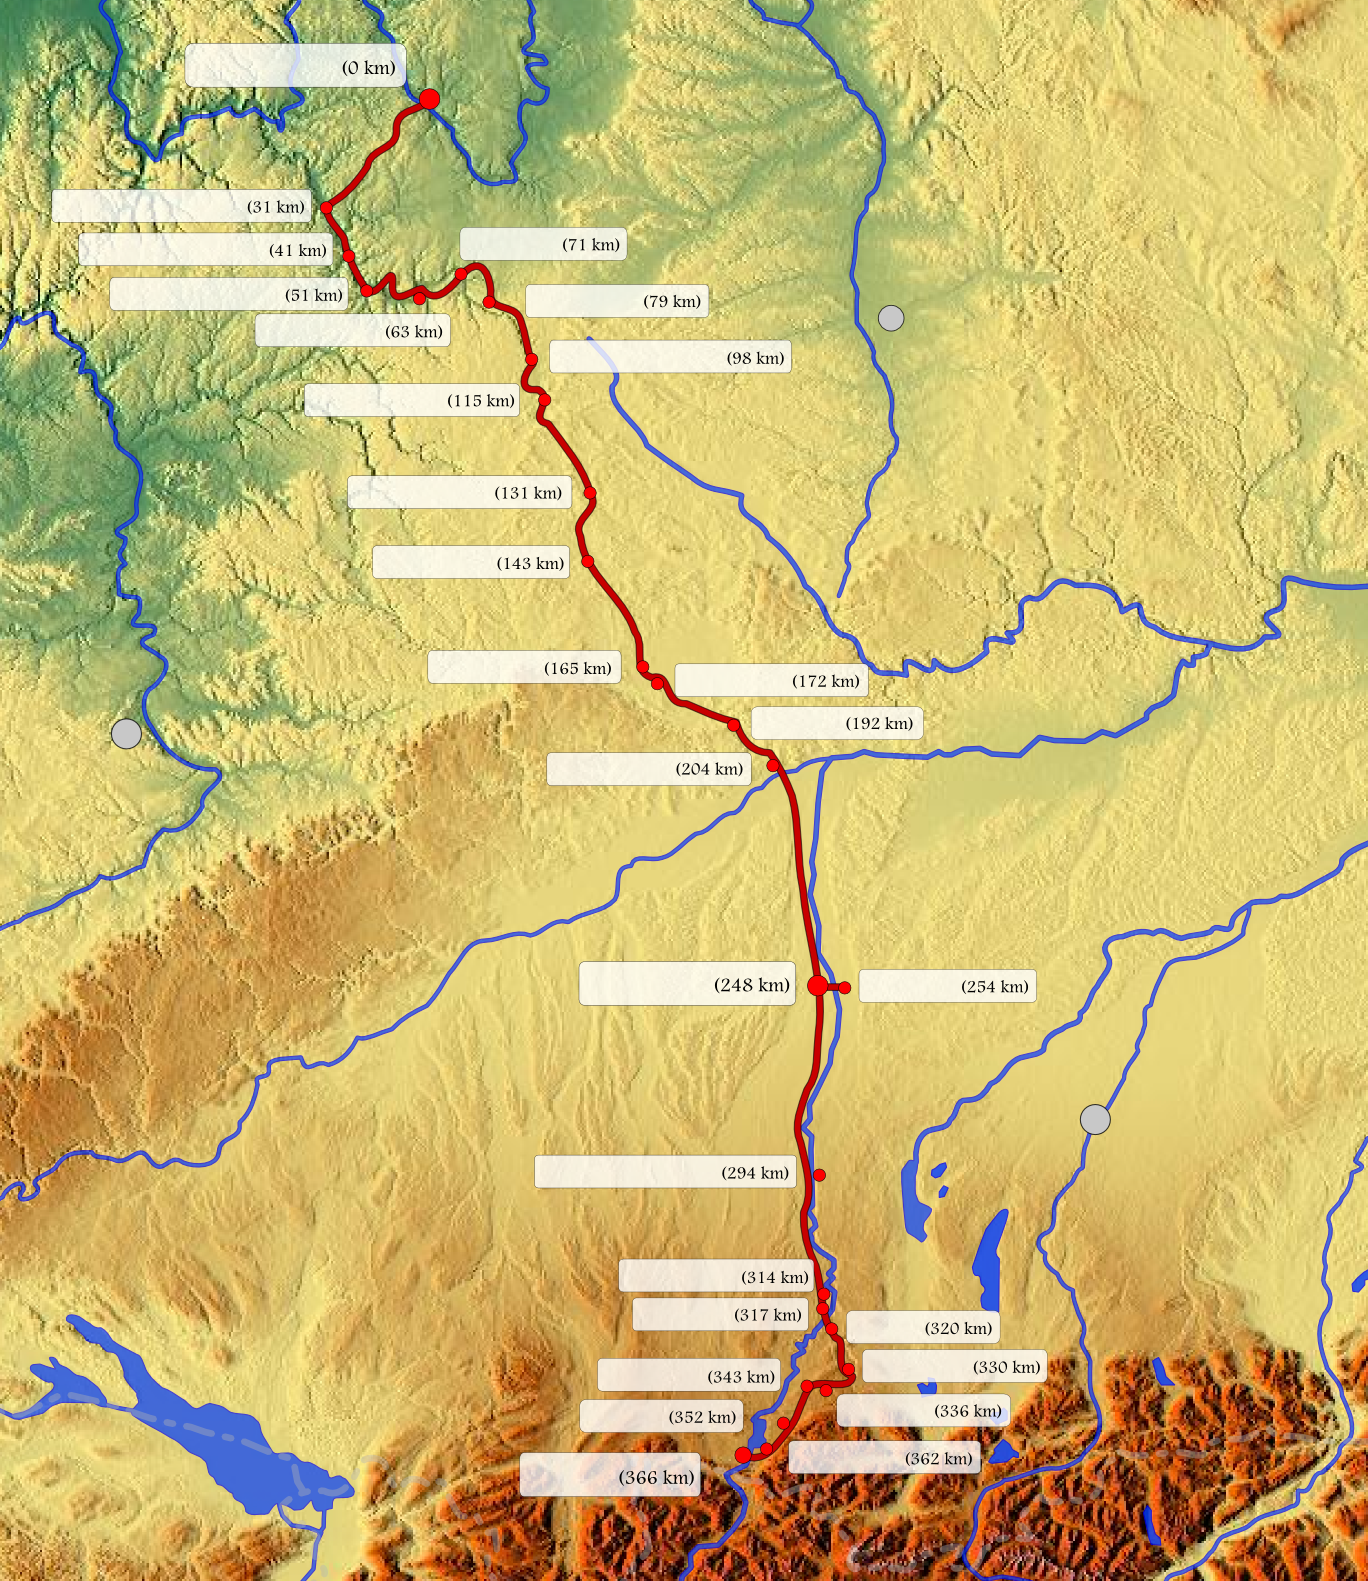 Blank Road Map: File:The Romantic Road In Germany (blank Map).png